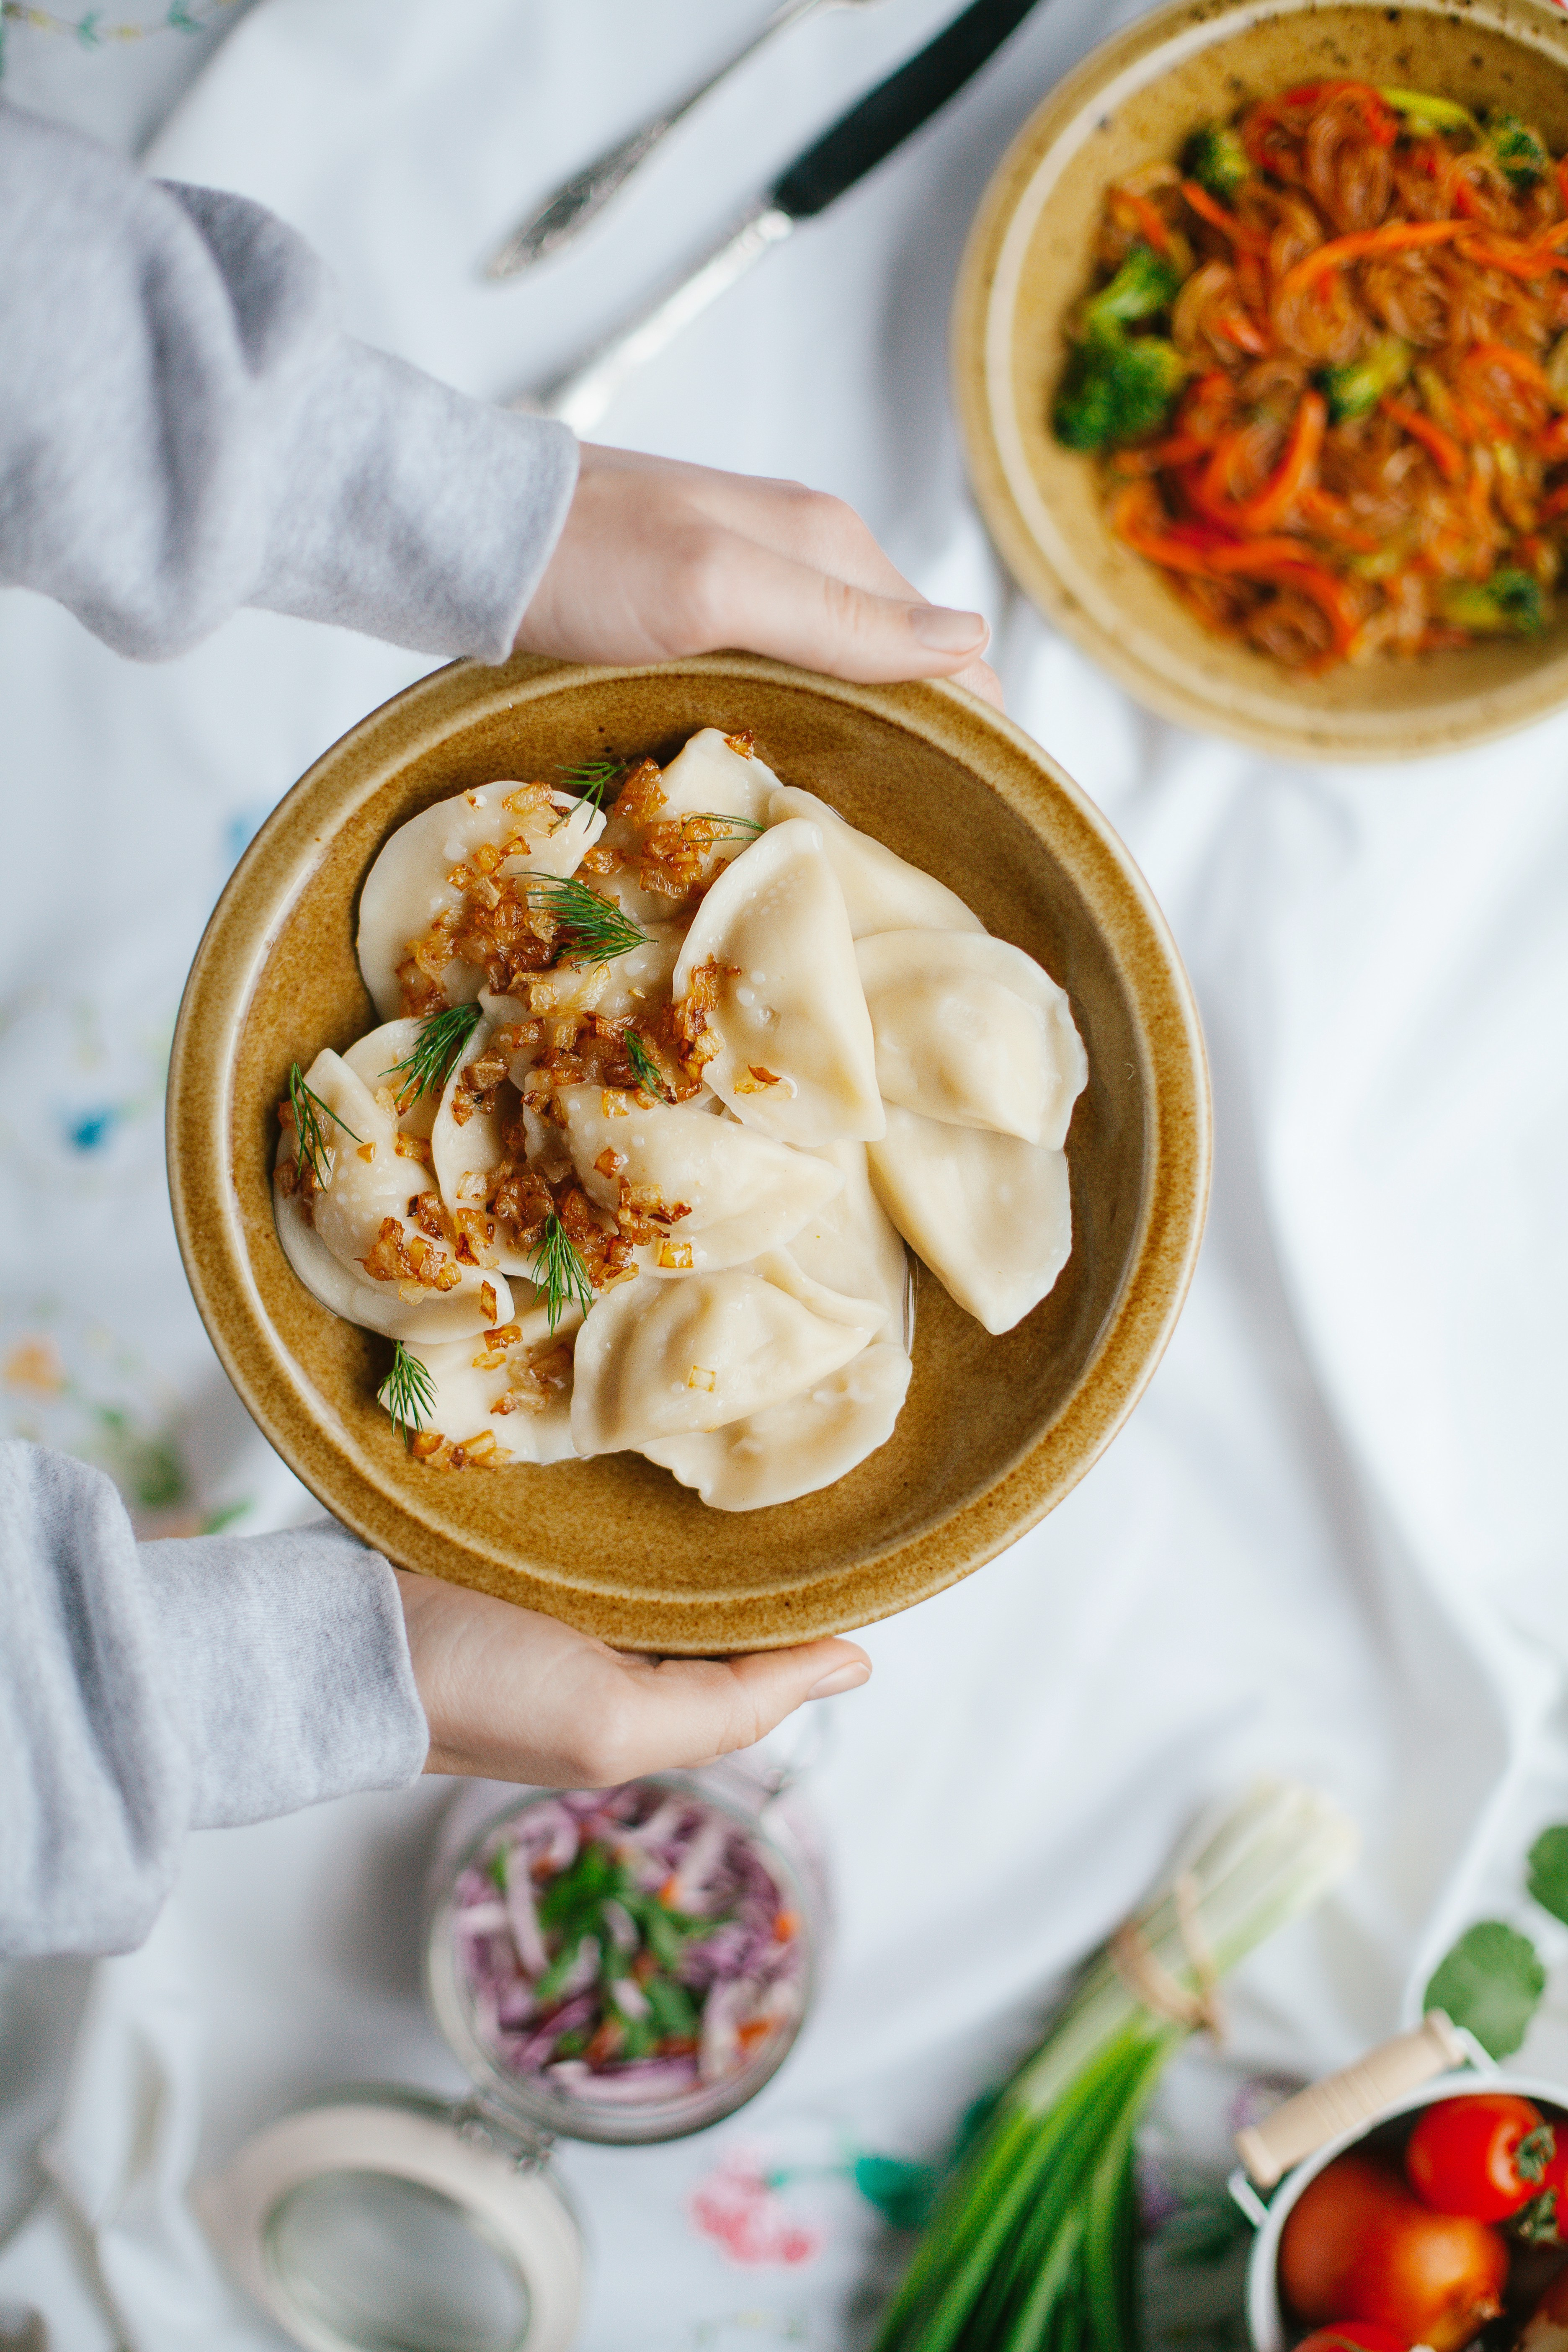 Dumplings on a plate which tragically haven't been fried yet